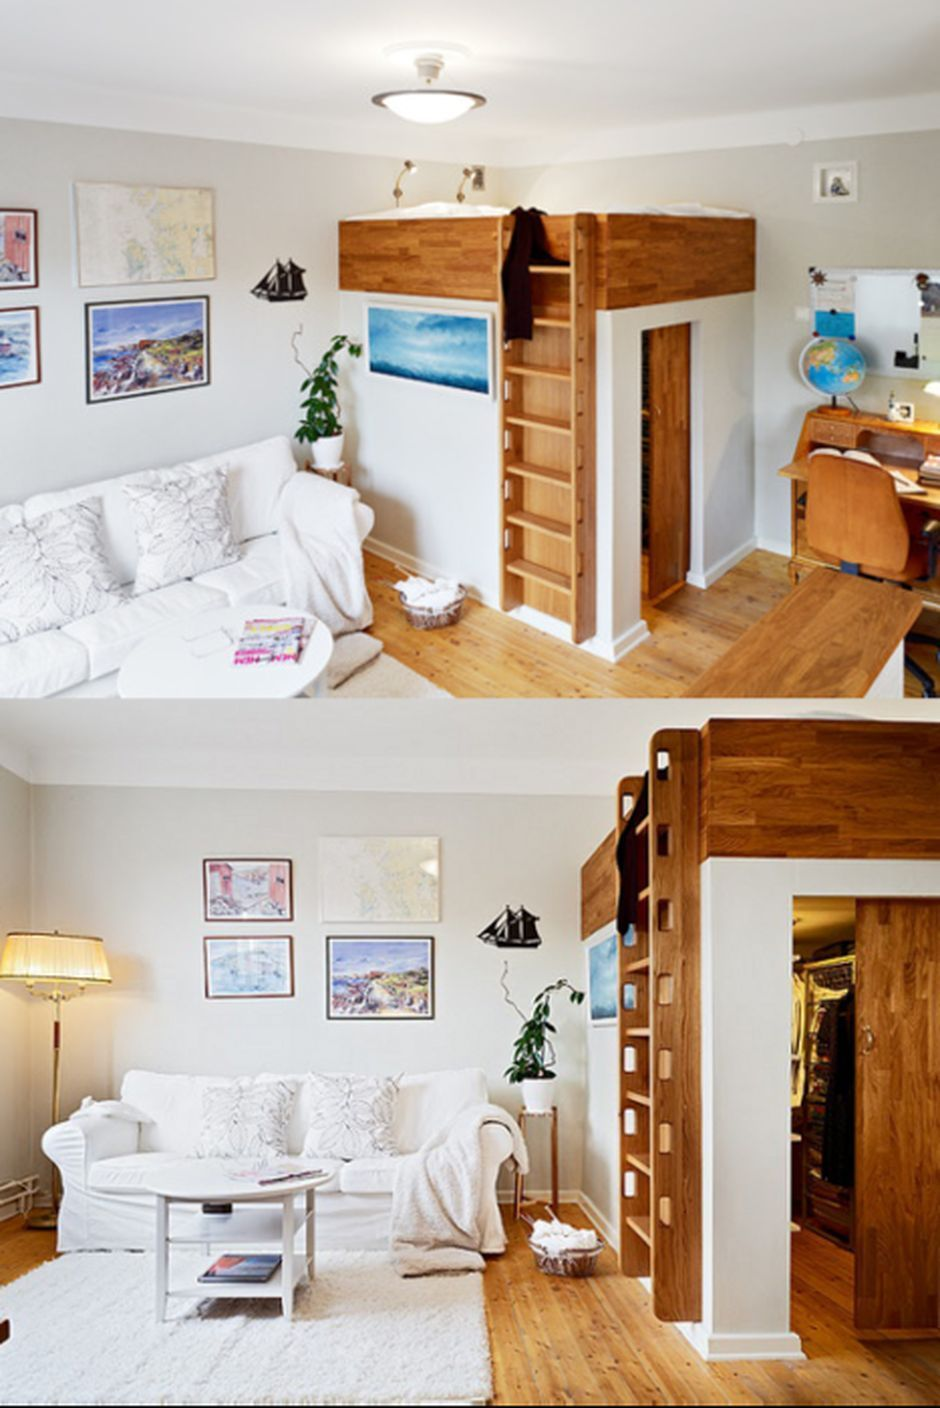 Cool Loft Bed Design Ideas for Small Room 50 (With images